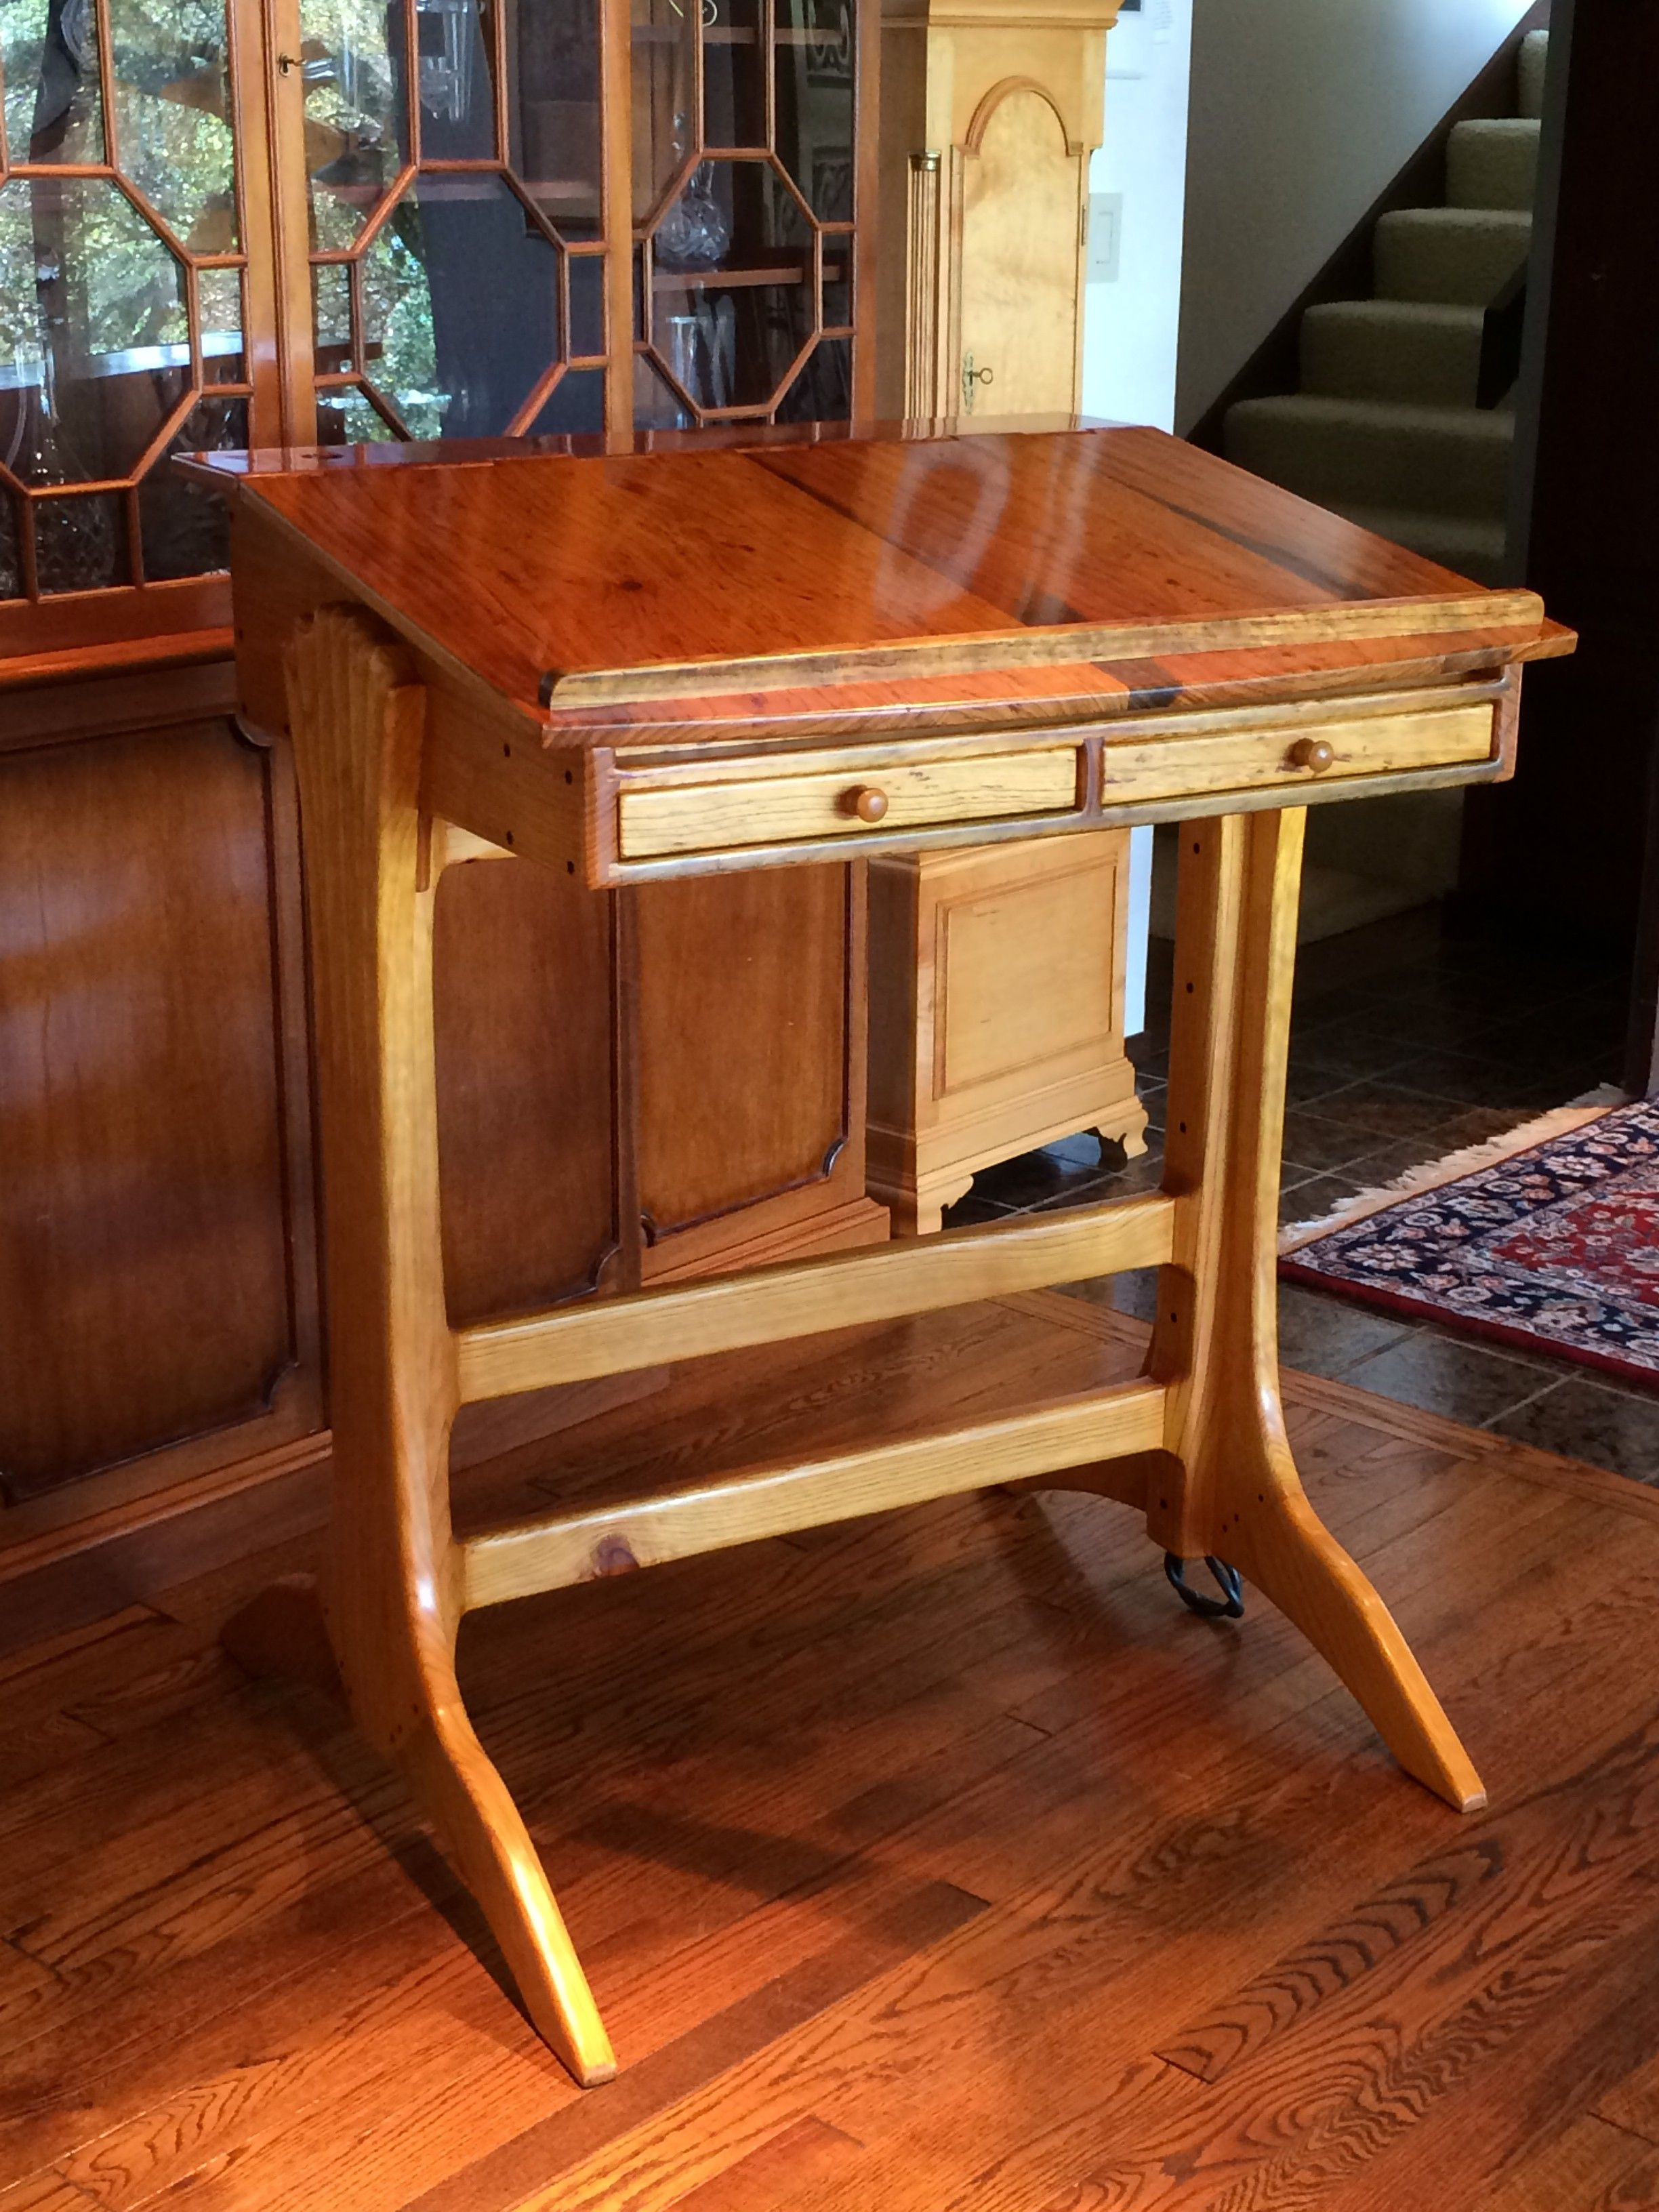 A Sculptured Stool Fine Woodworking Furniture I Like